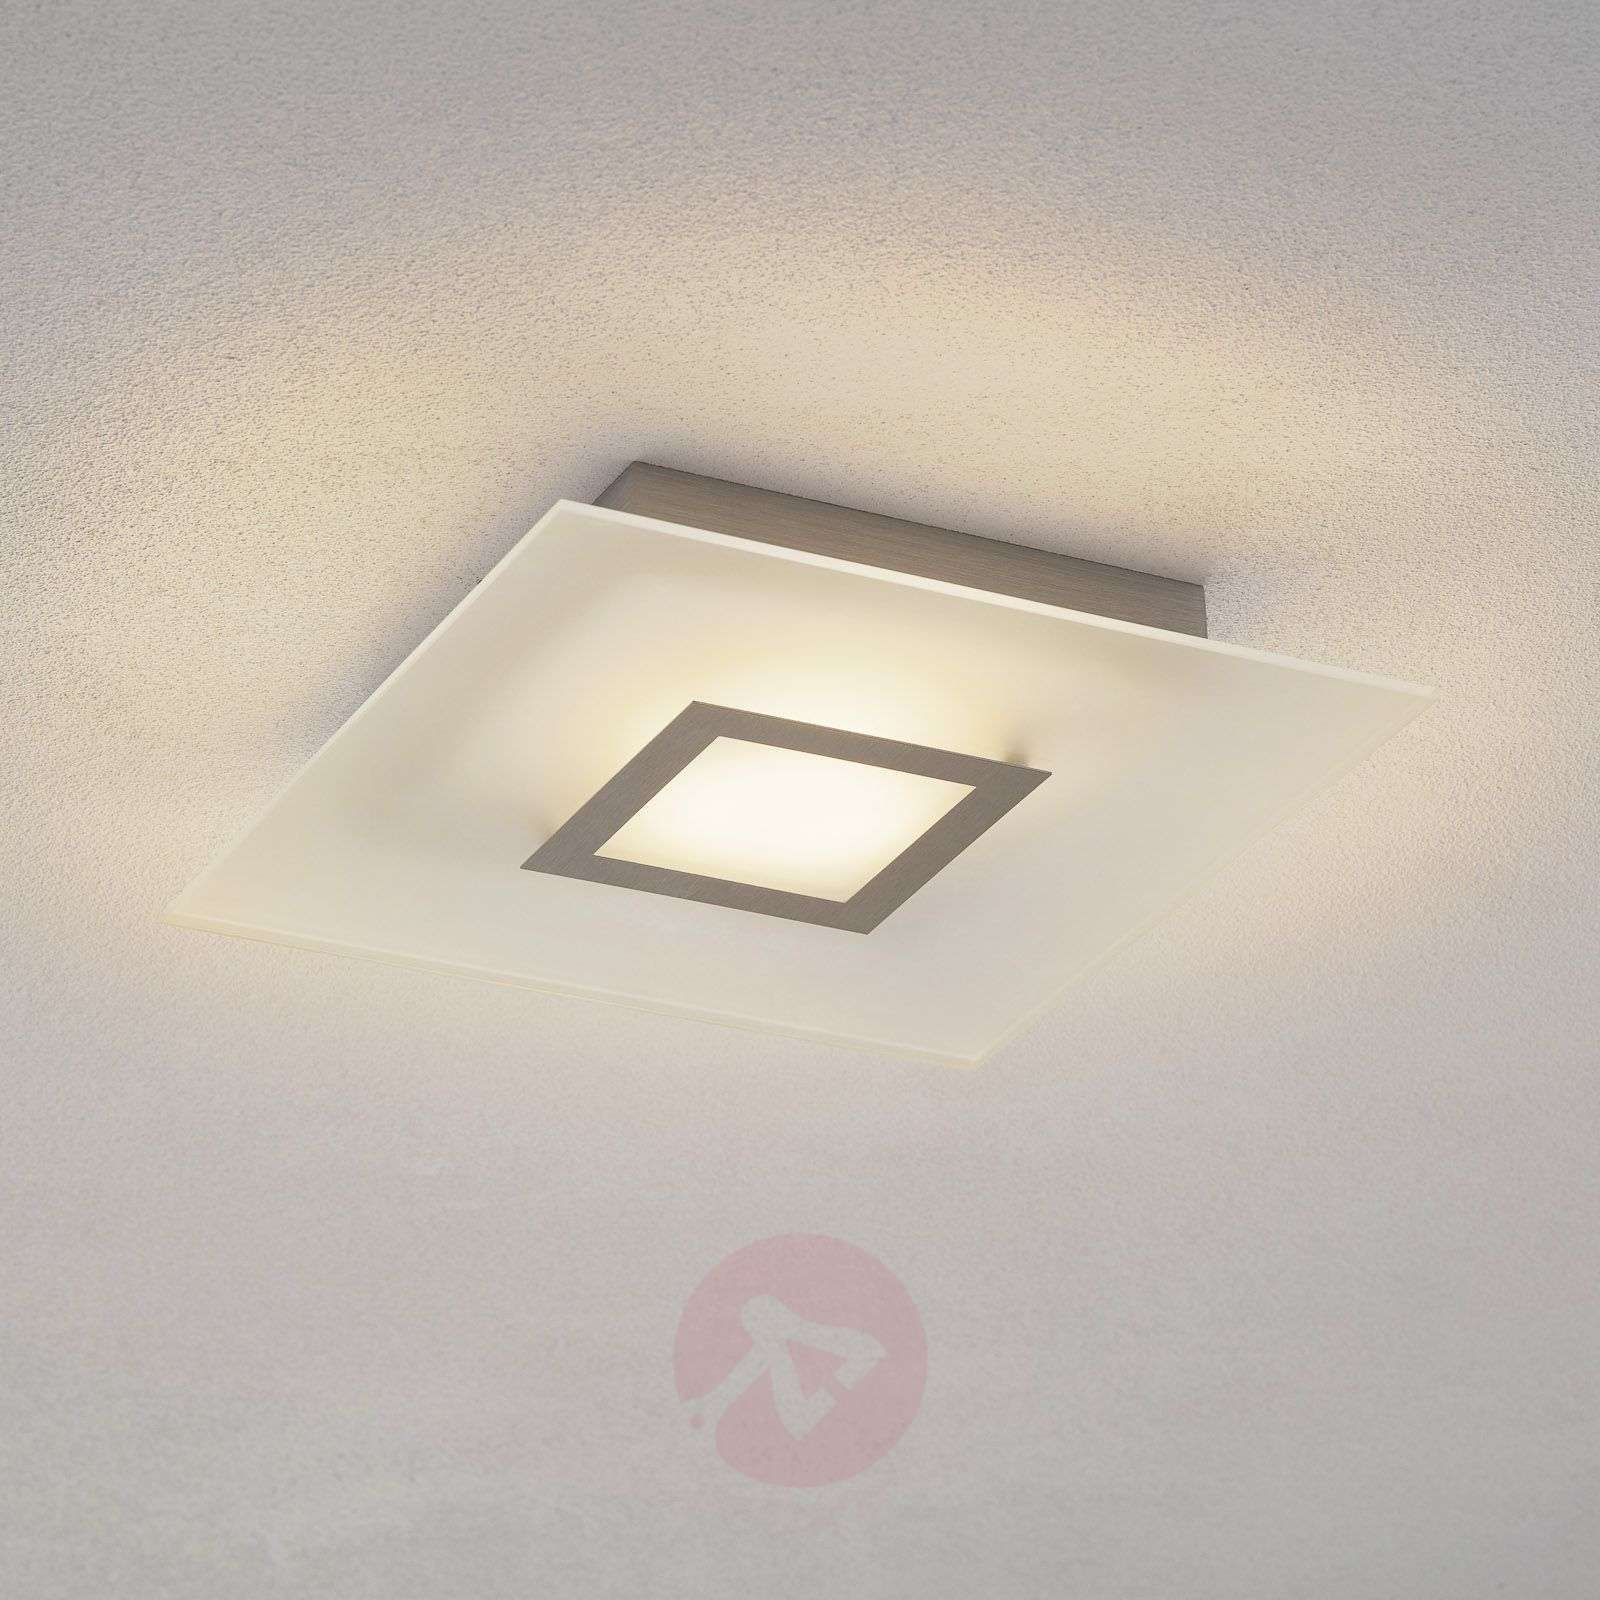 Flat plafoniera LED quadrata, dimmerabile-1556100-01